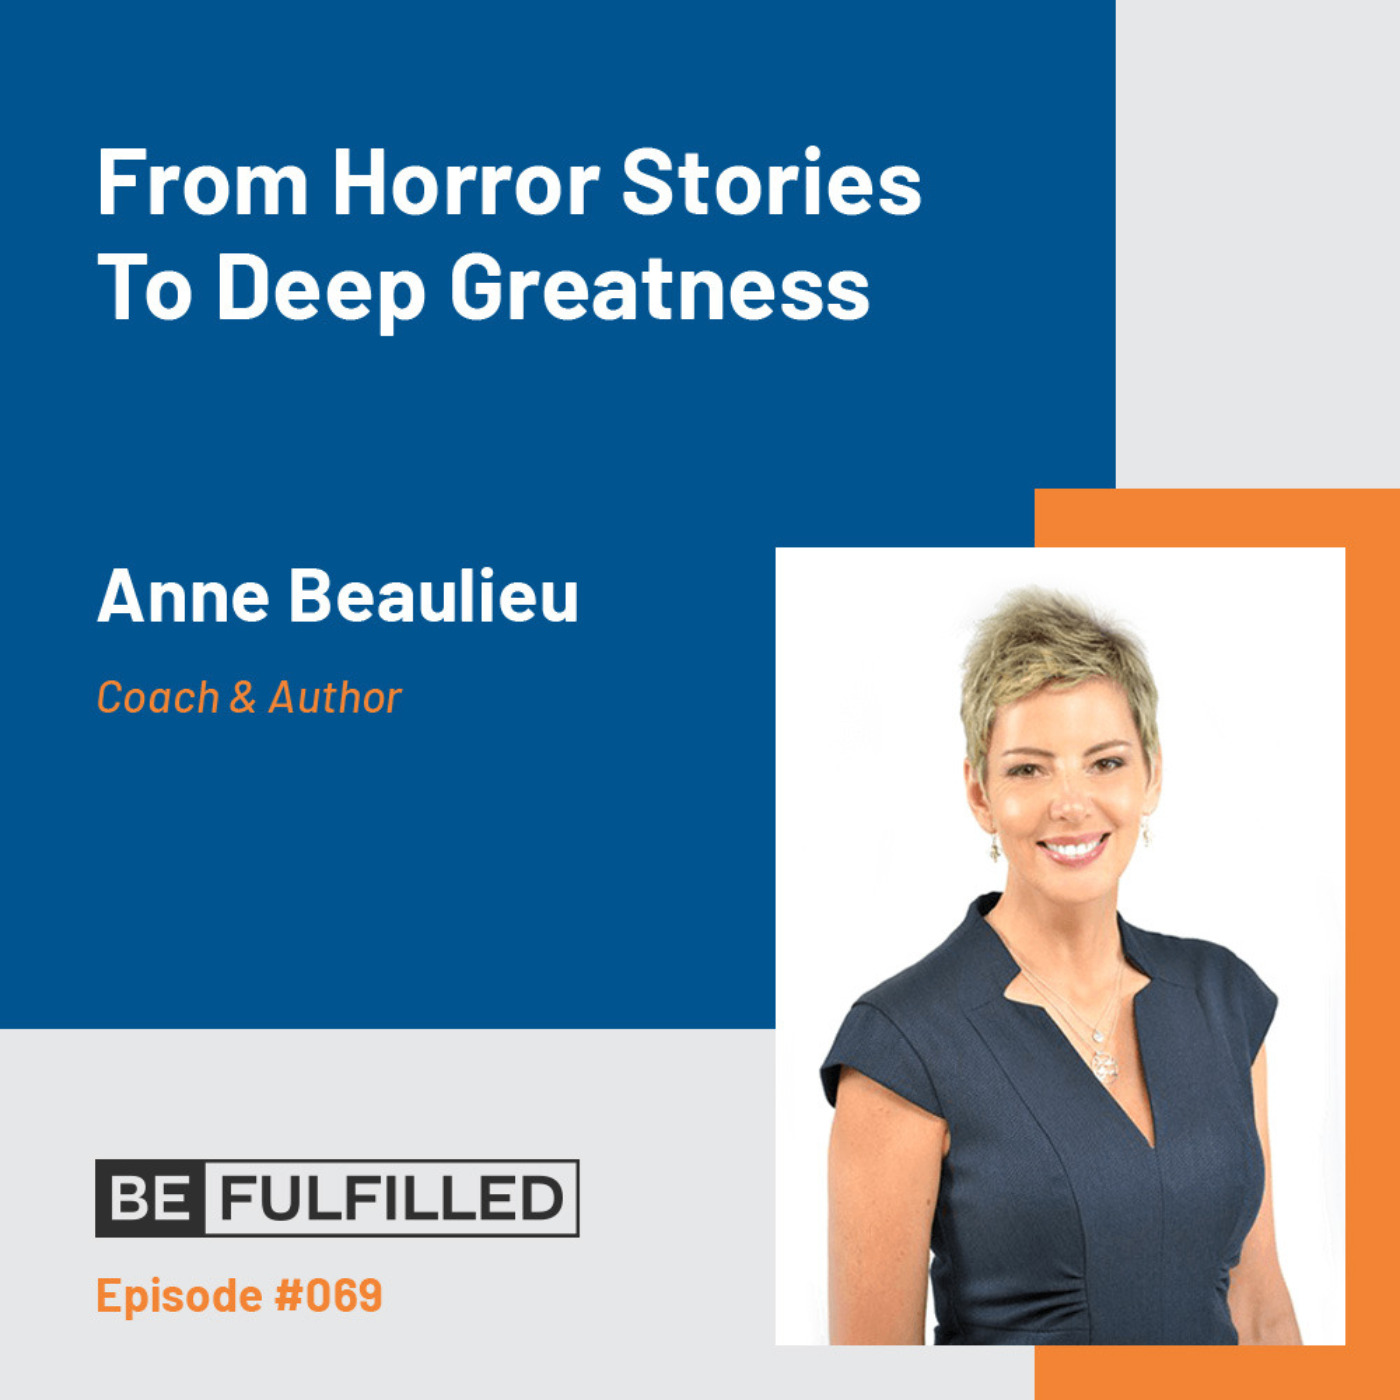 From Horror Stories To Deep Greatness - Anne Beaulieu